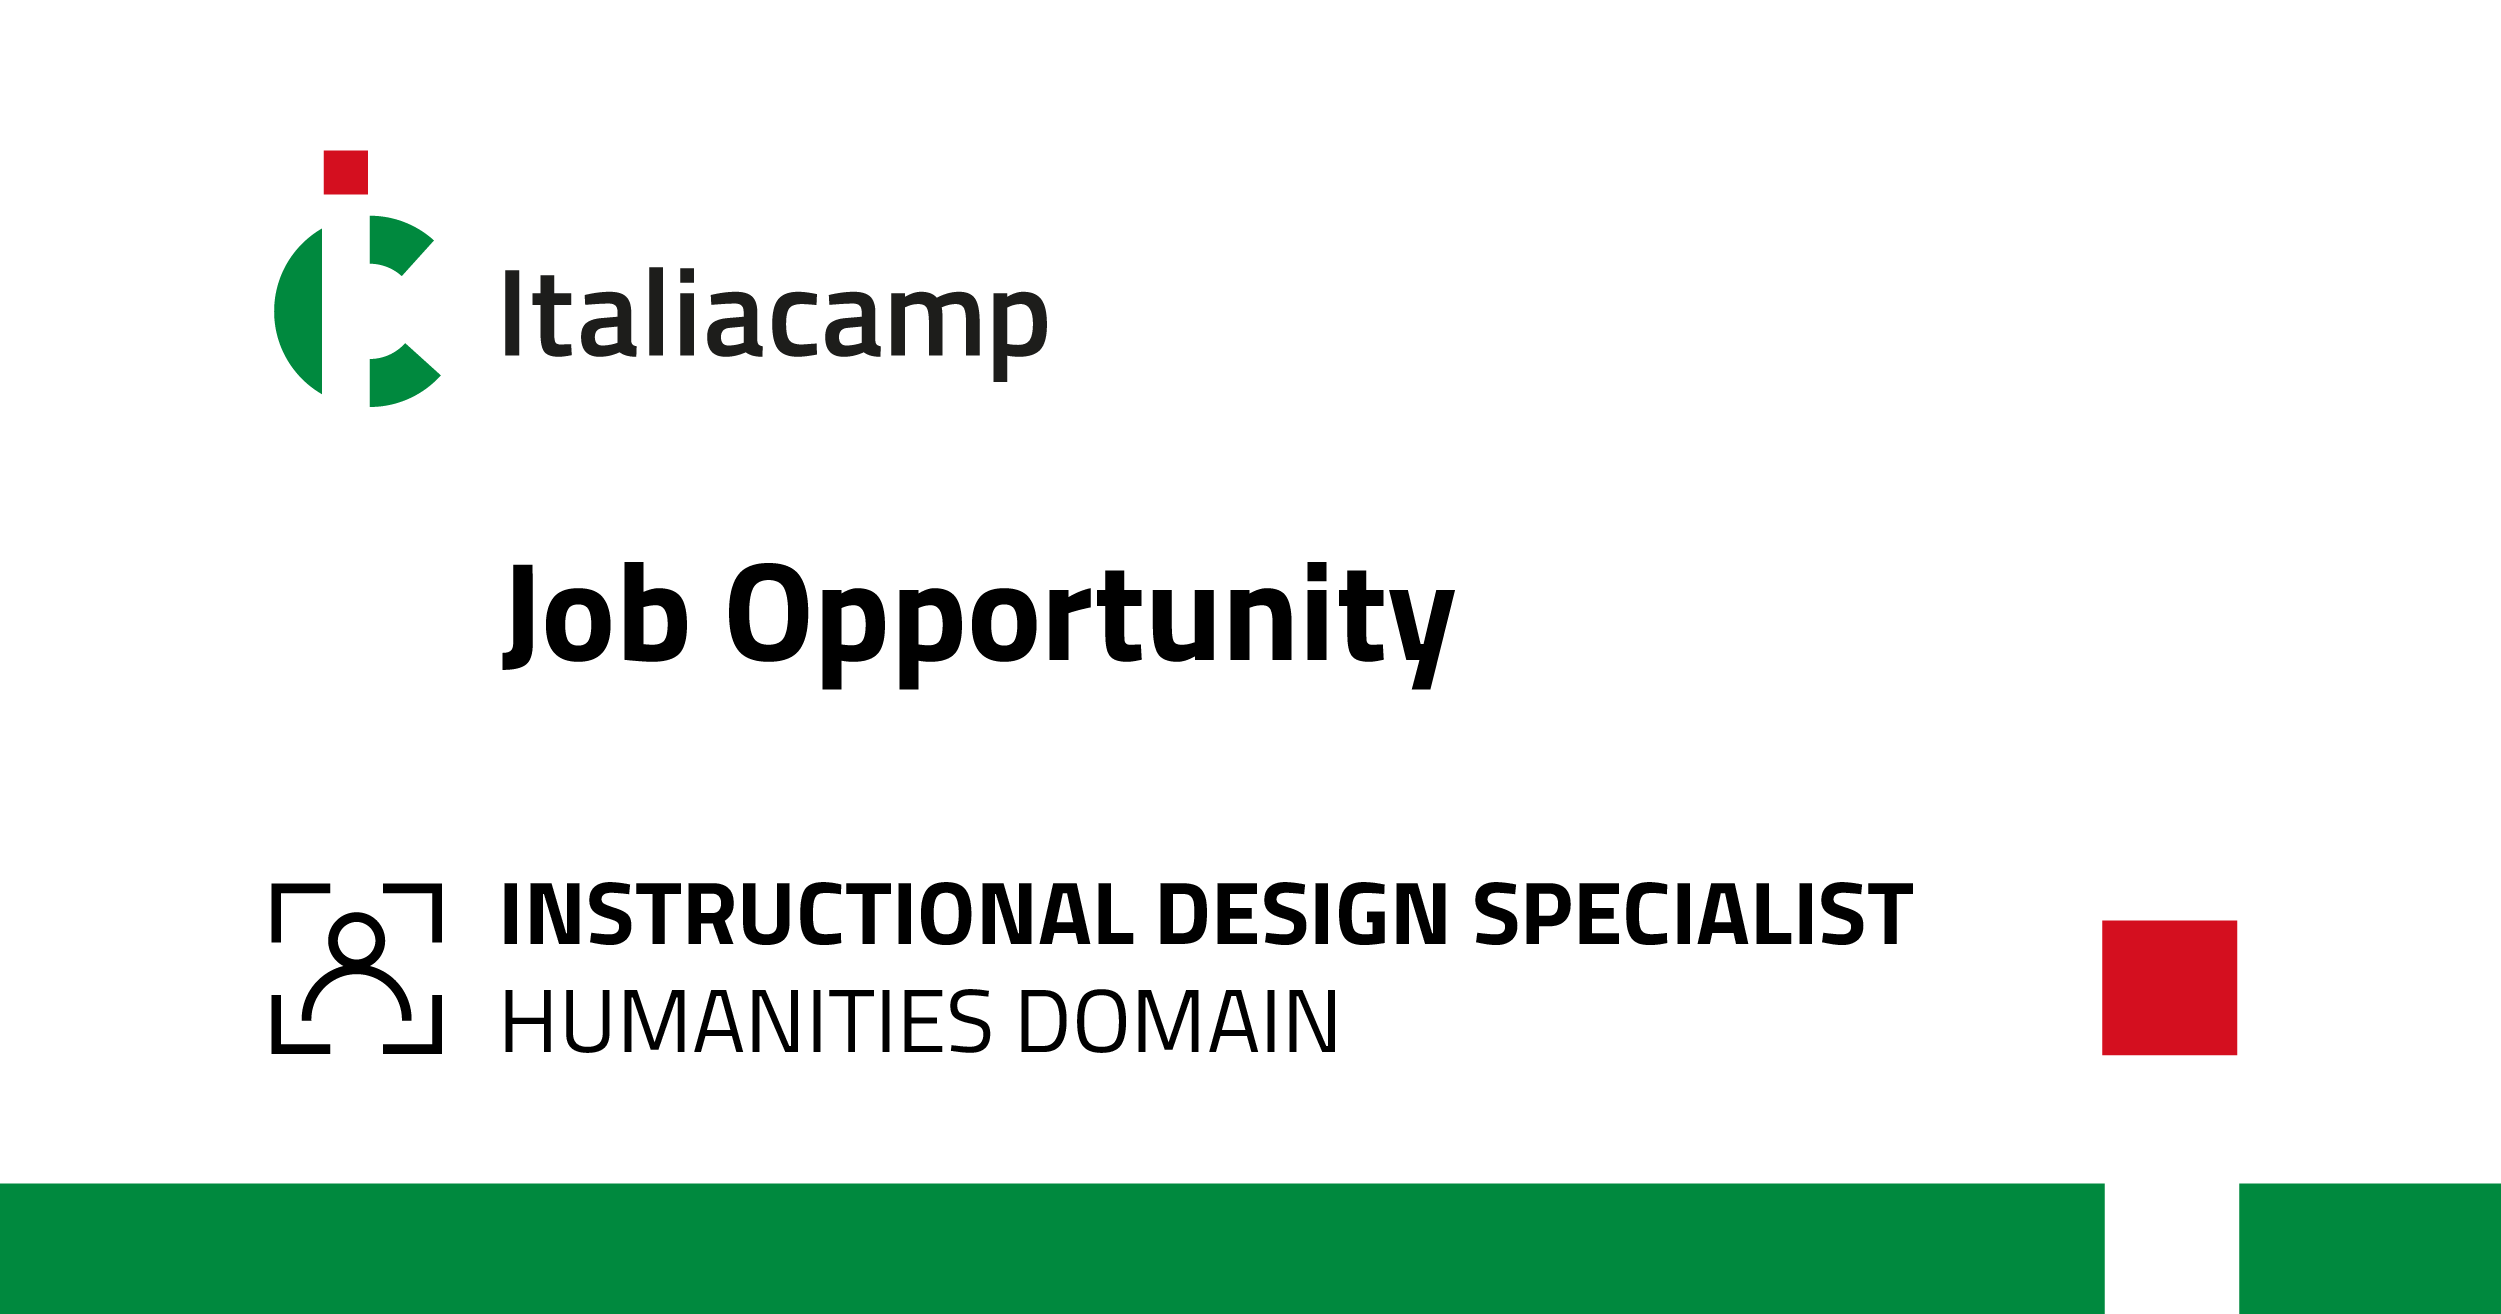 Job opportunity: Instructional Design Specialist, Humanities Domain